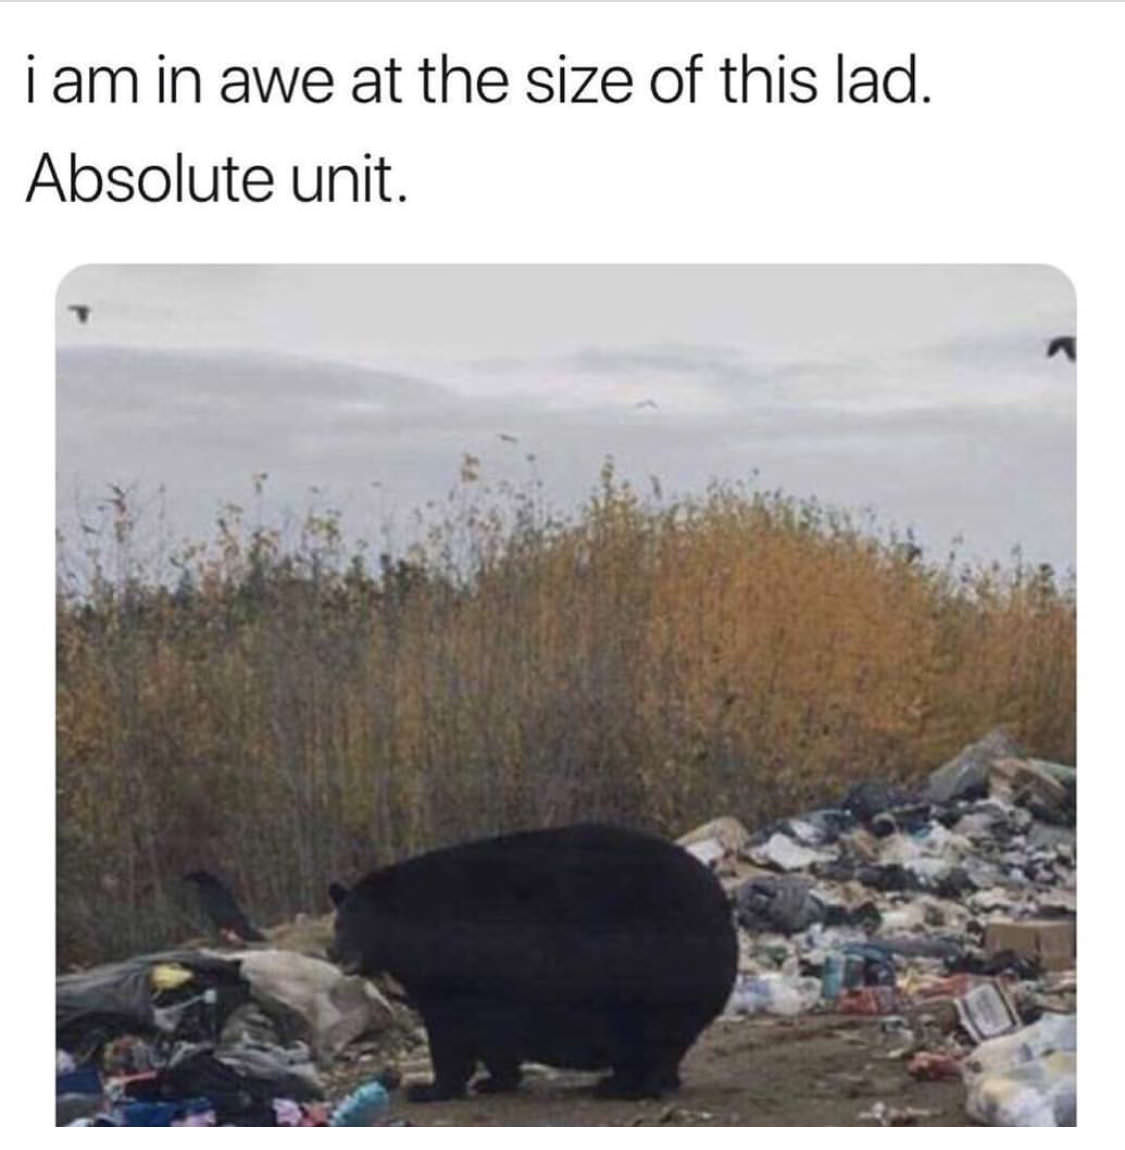 absolute unit - Liberal Dictionary